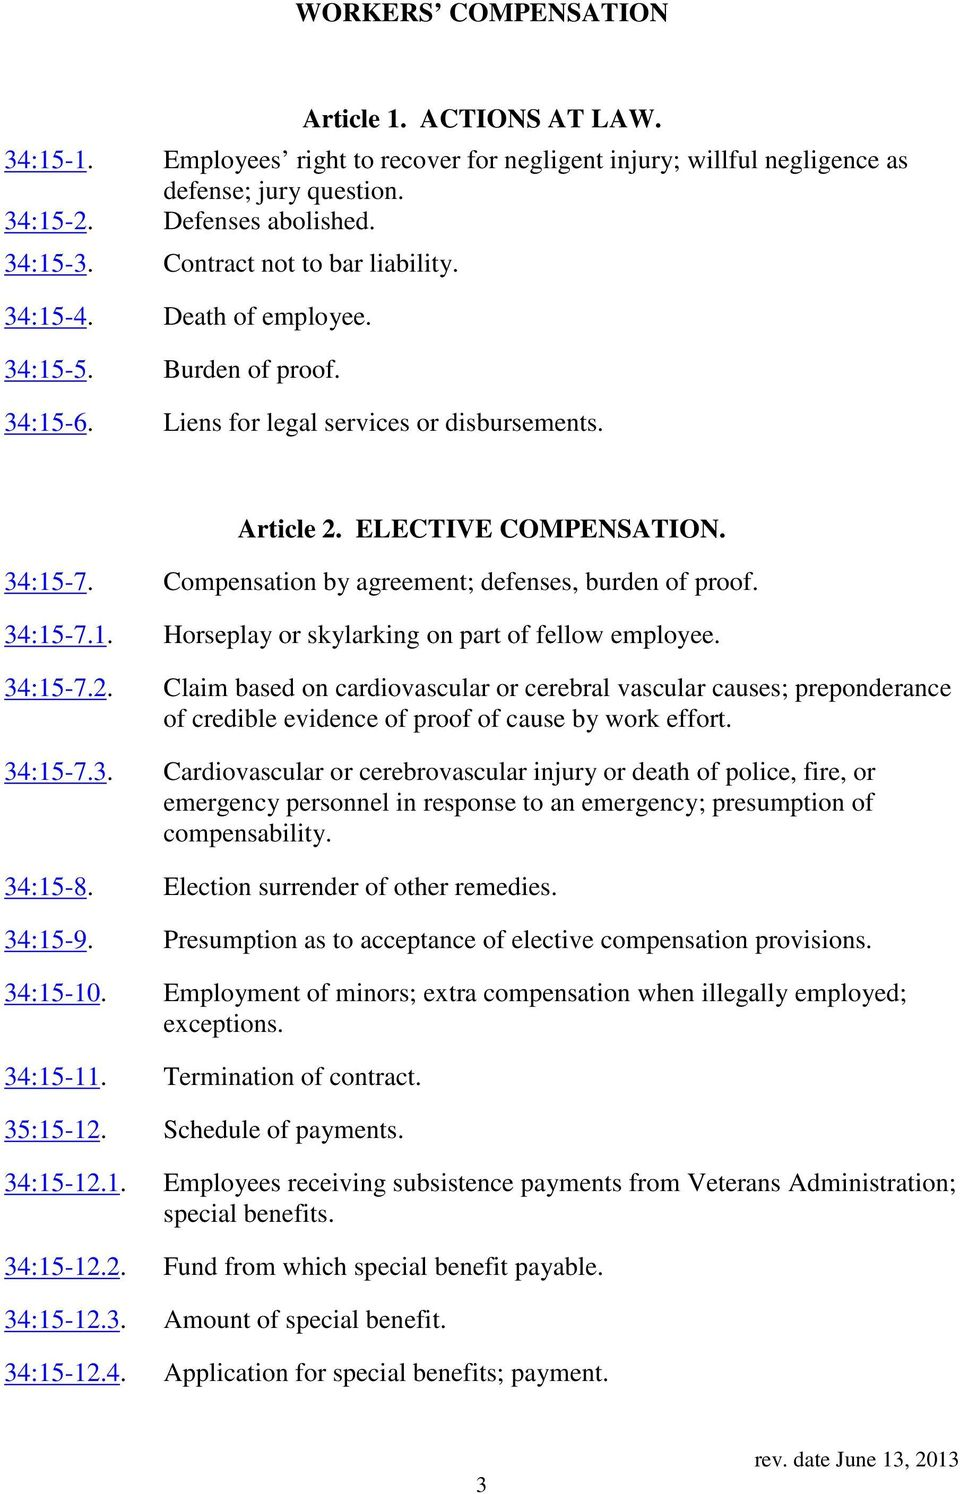 Compensation by agreement; defenses, burden of proof. 34:15-7.1. Horseplay or skylarking on part of fellow employee. 34:15-7.2.